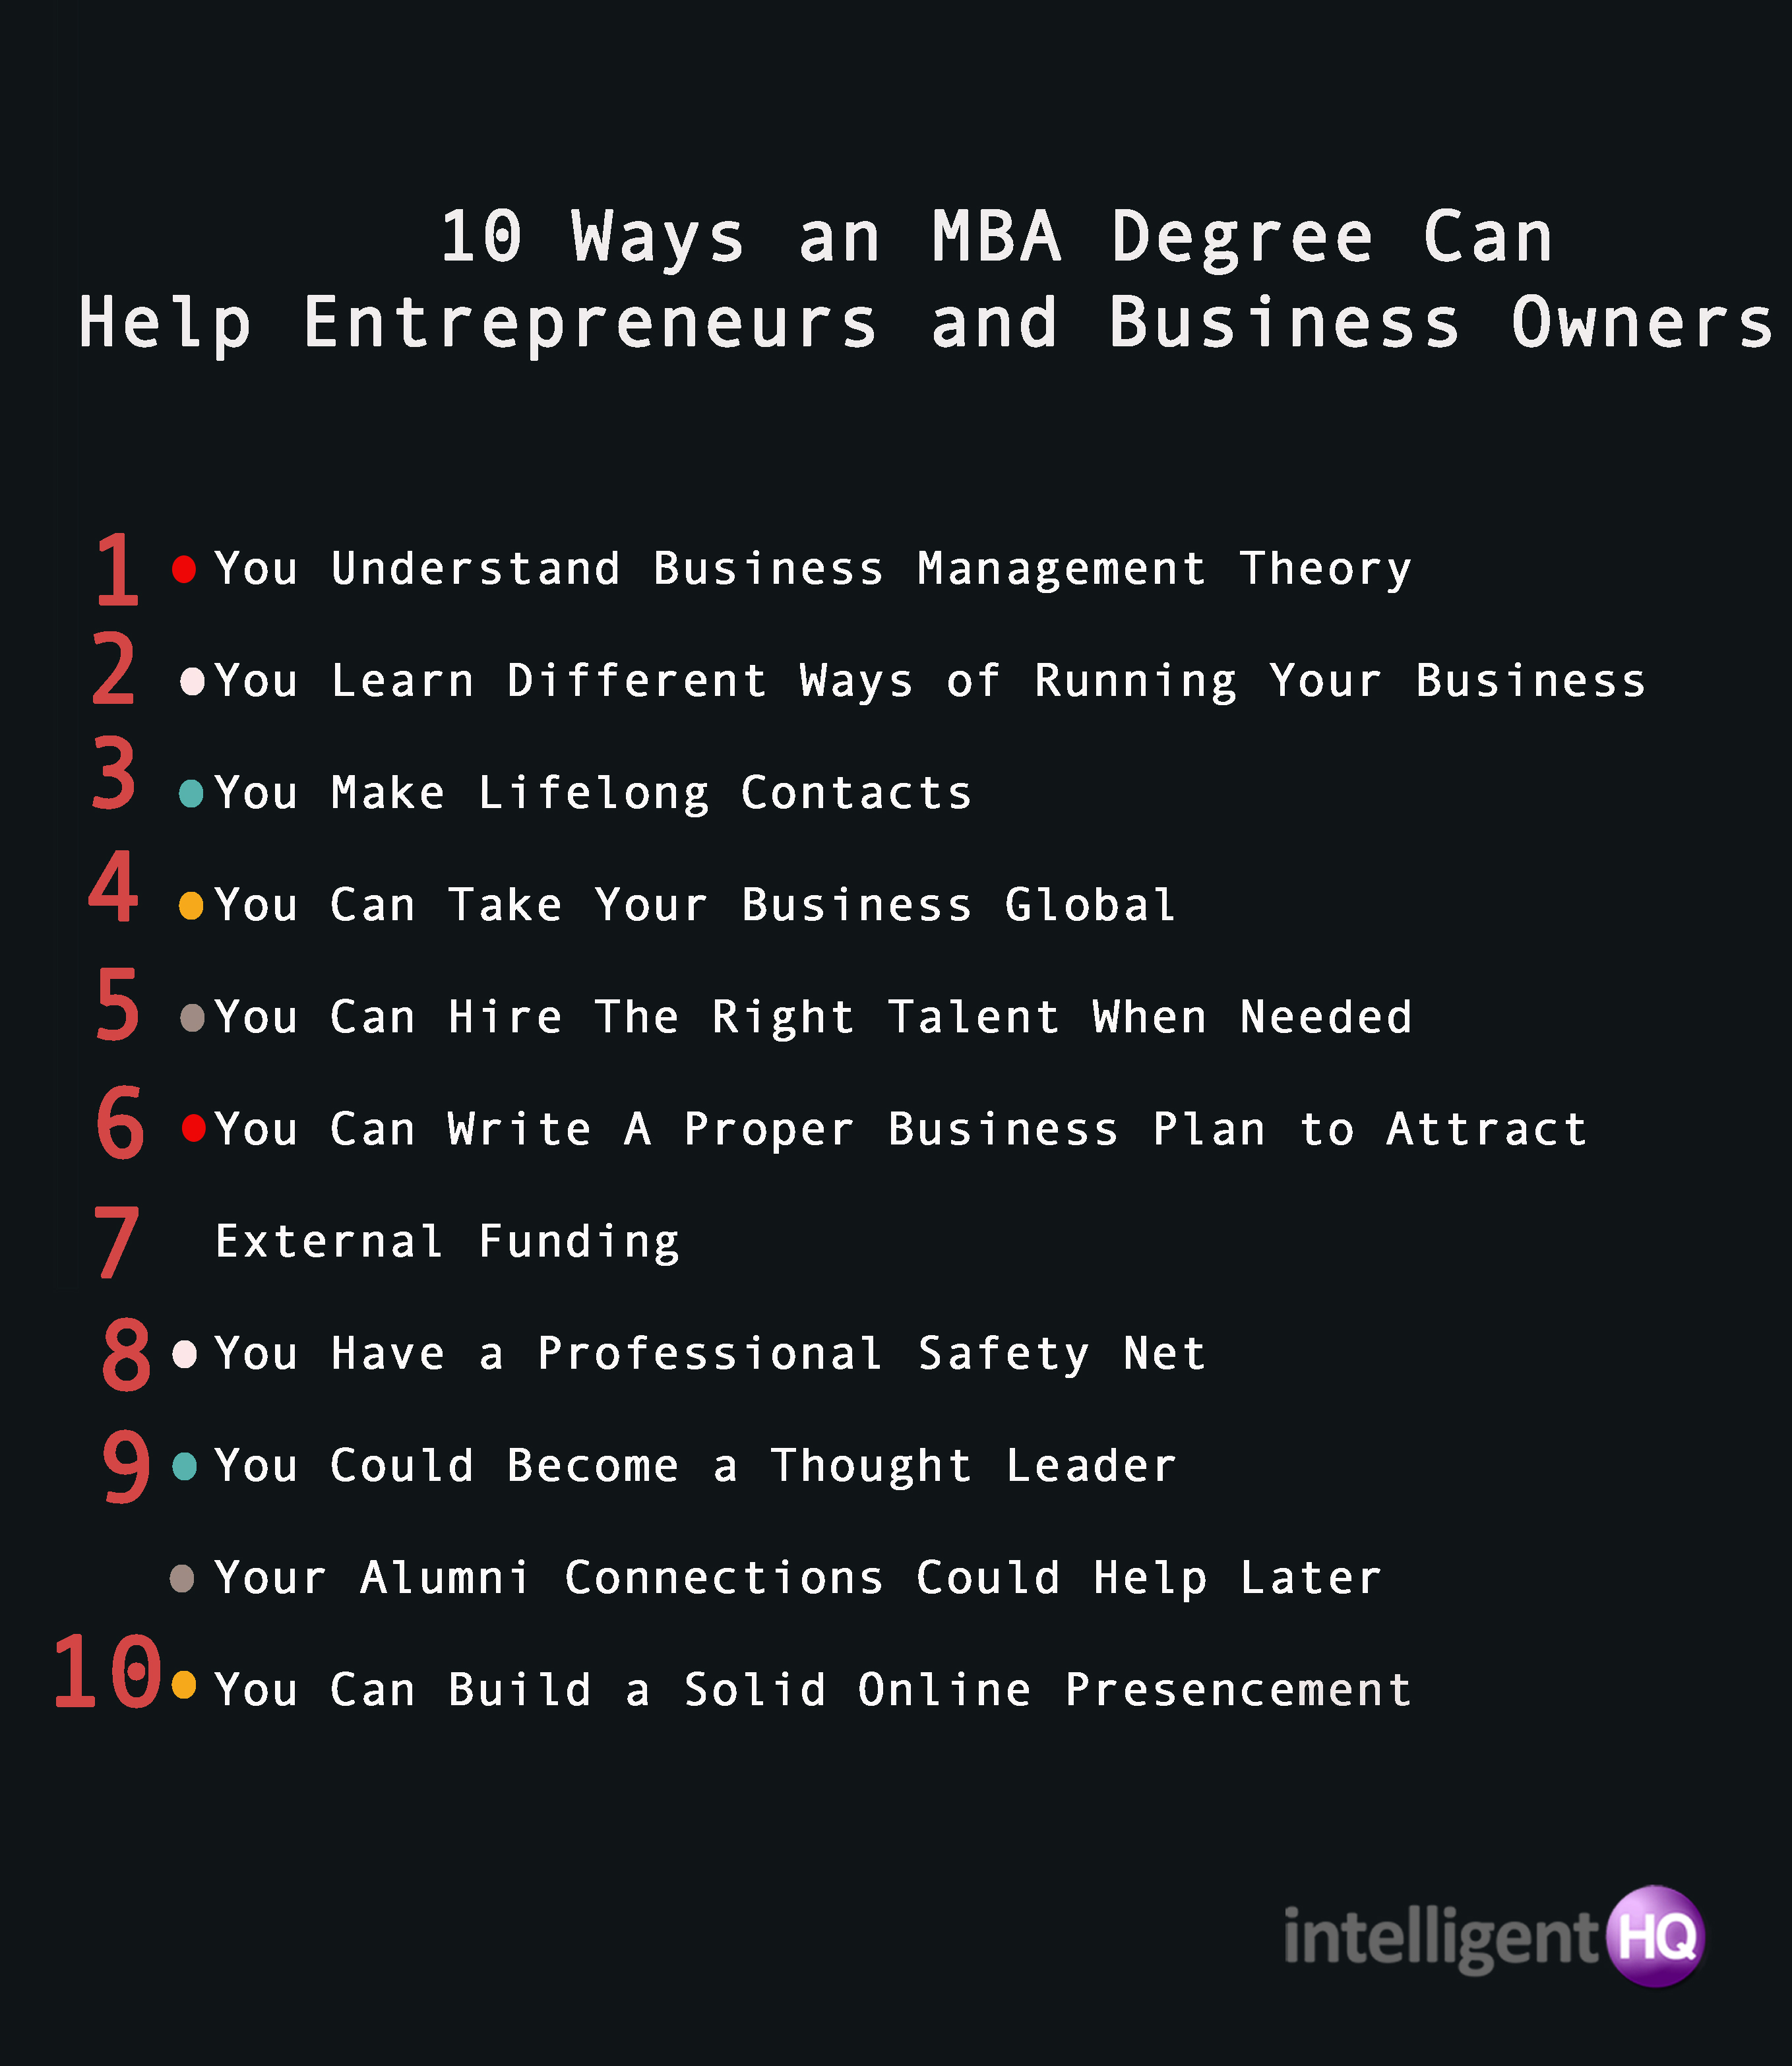 ways an mba degree can help entrepreneurs and business owners 10 ways an mba degree can help entrepreneurs and business owners intelligenthq